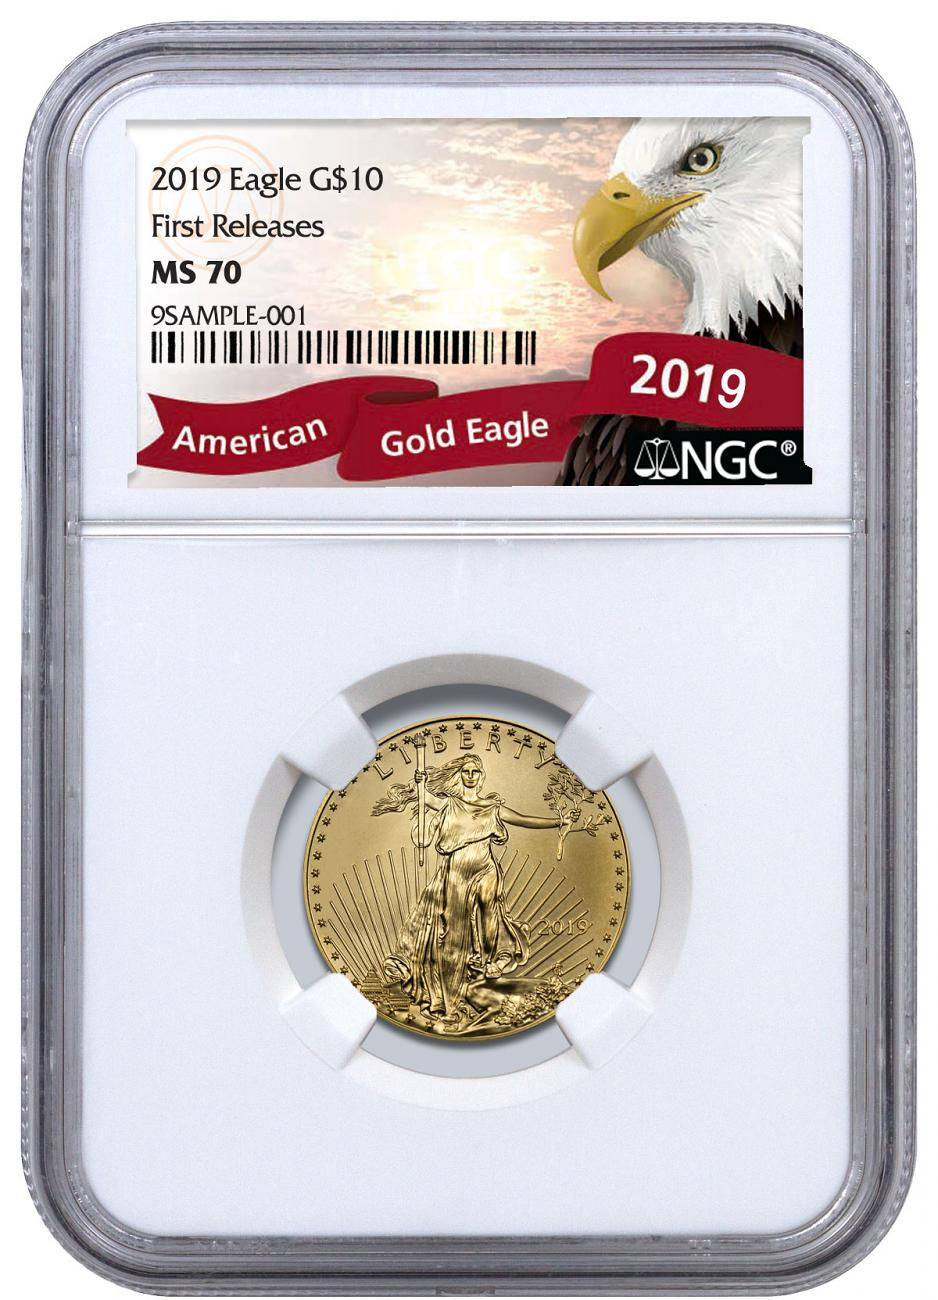 2019 1/4 oz Gold American Eagle $10 NGC MS70 FR Exclusive Eagle Label